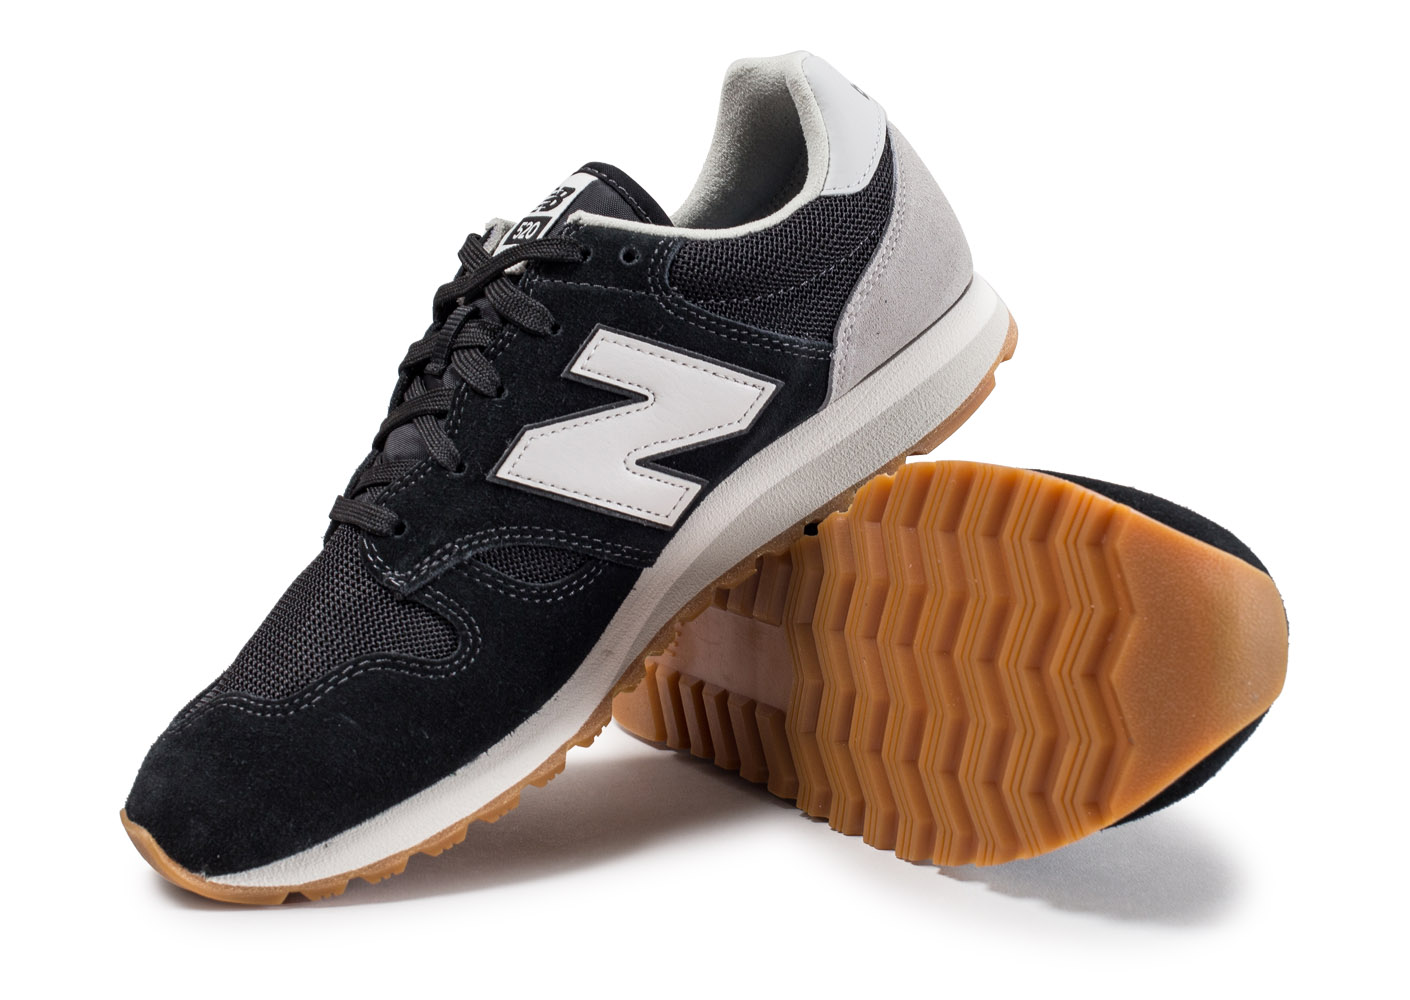 New Balance U520 Ag Noire Et Grise Baskets/Running Homme vqHGfIhYID